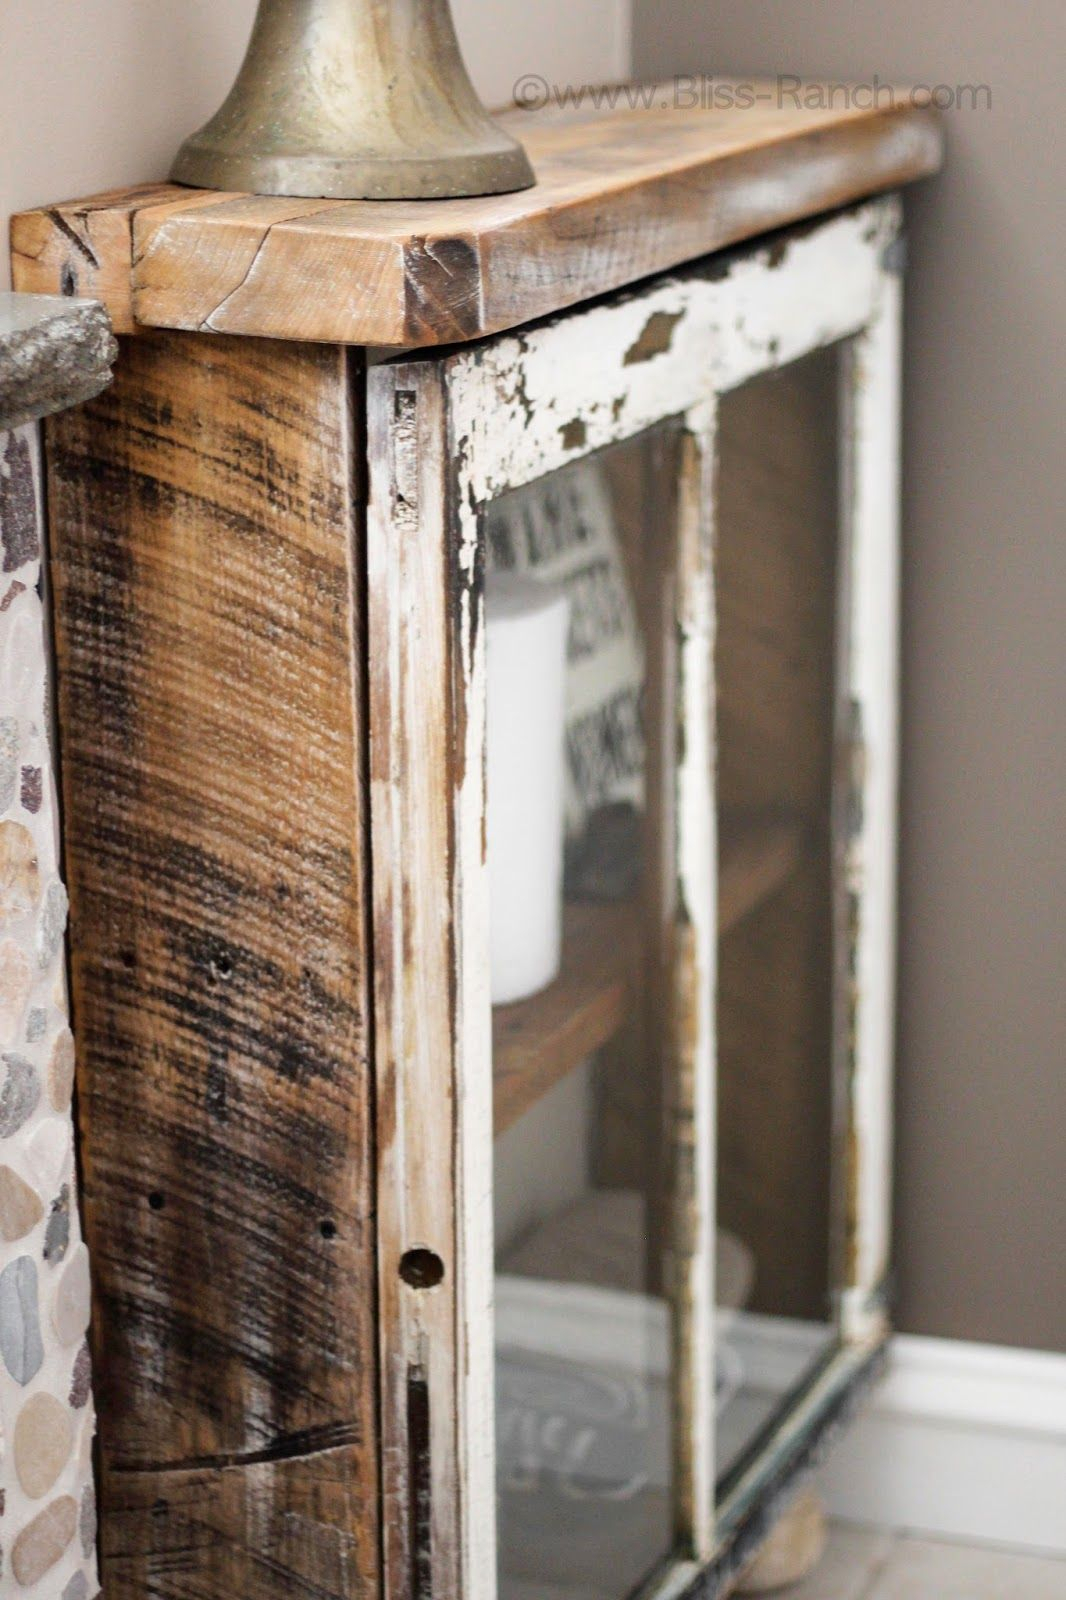 Old Window Frames - Easy Craft Ideas with Old Rustic Barn Window Frame (Image 18 of 30)